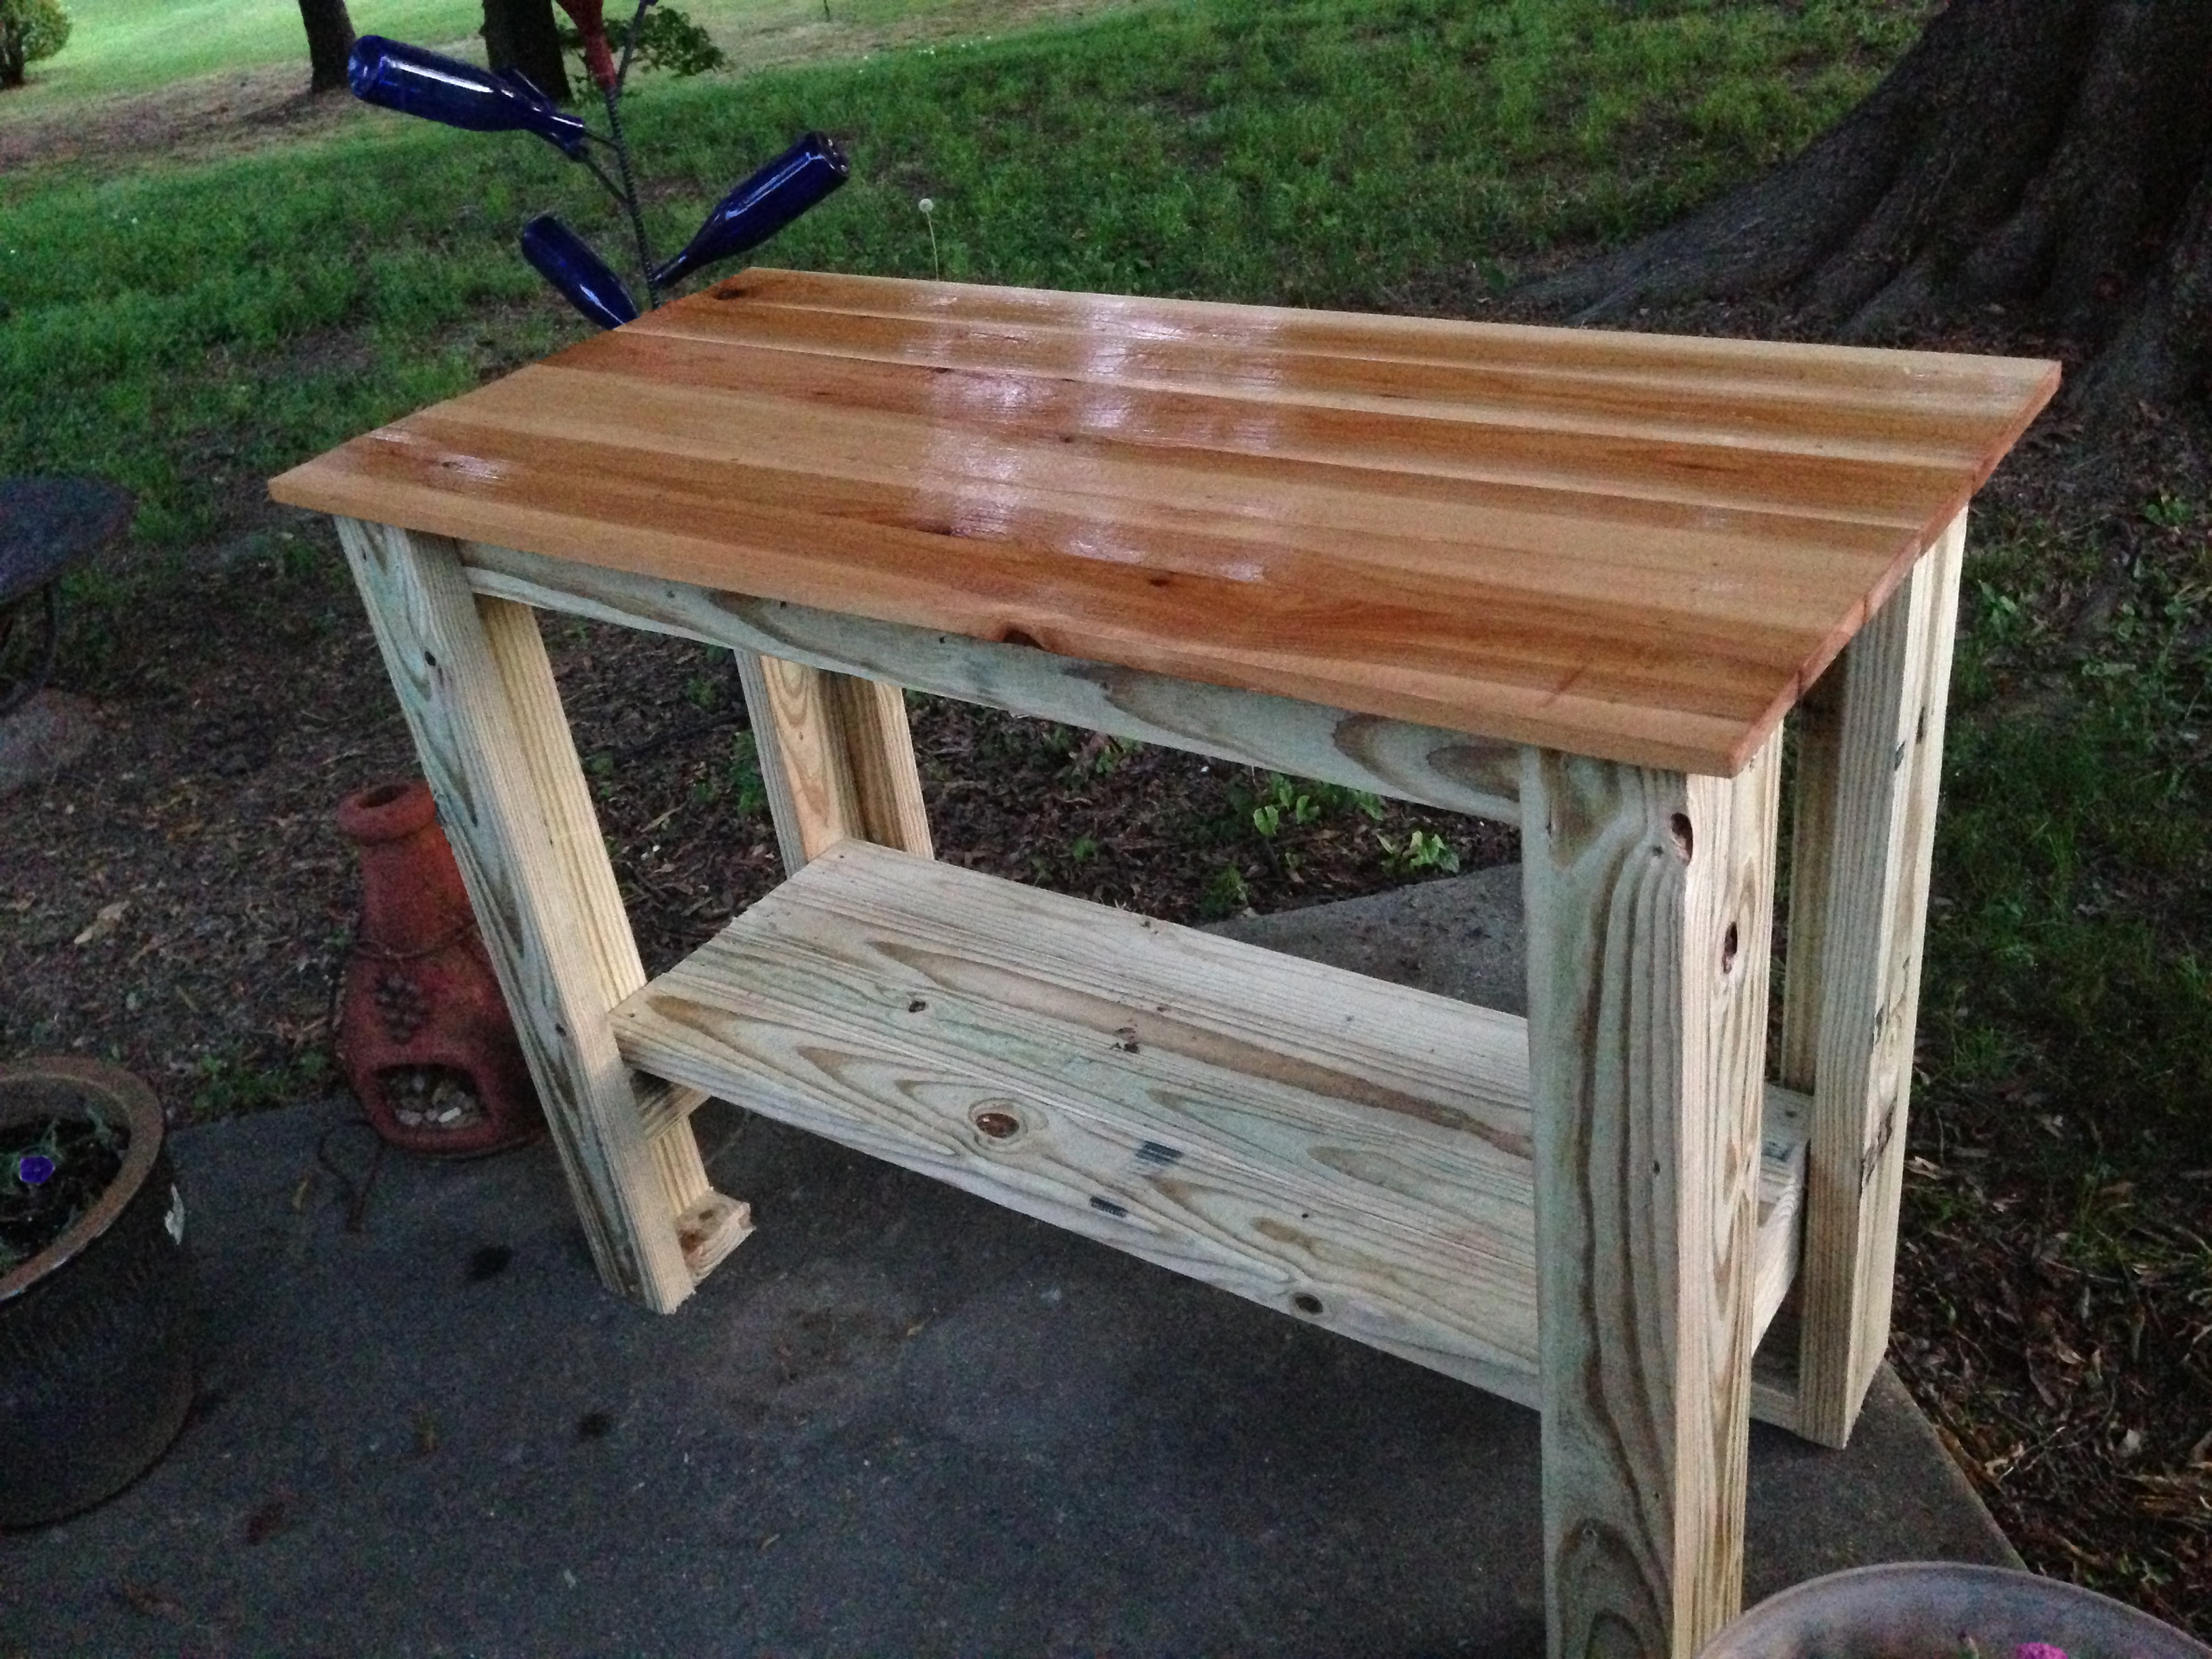 grillin and chillin outdoor grill food prep station kitchen prep tables Grillin and Chillin Outdoor Grill Food Prep Station